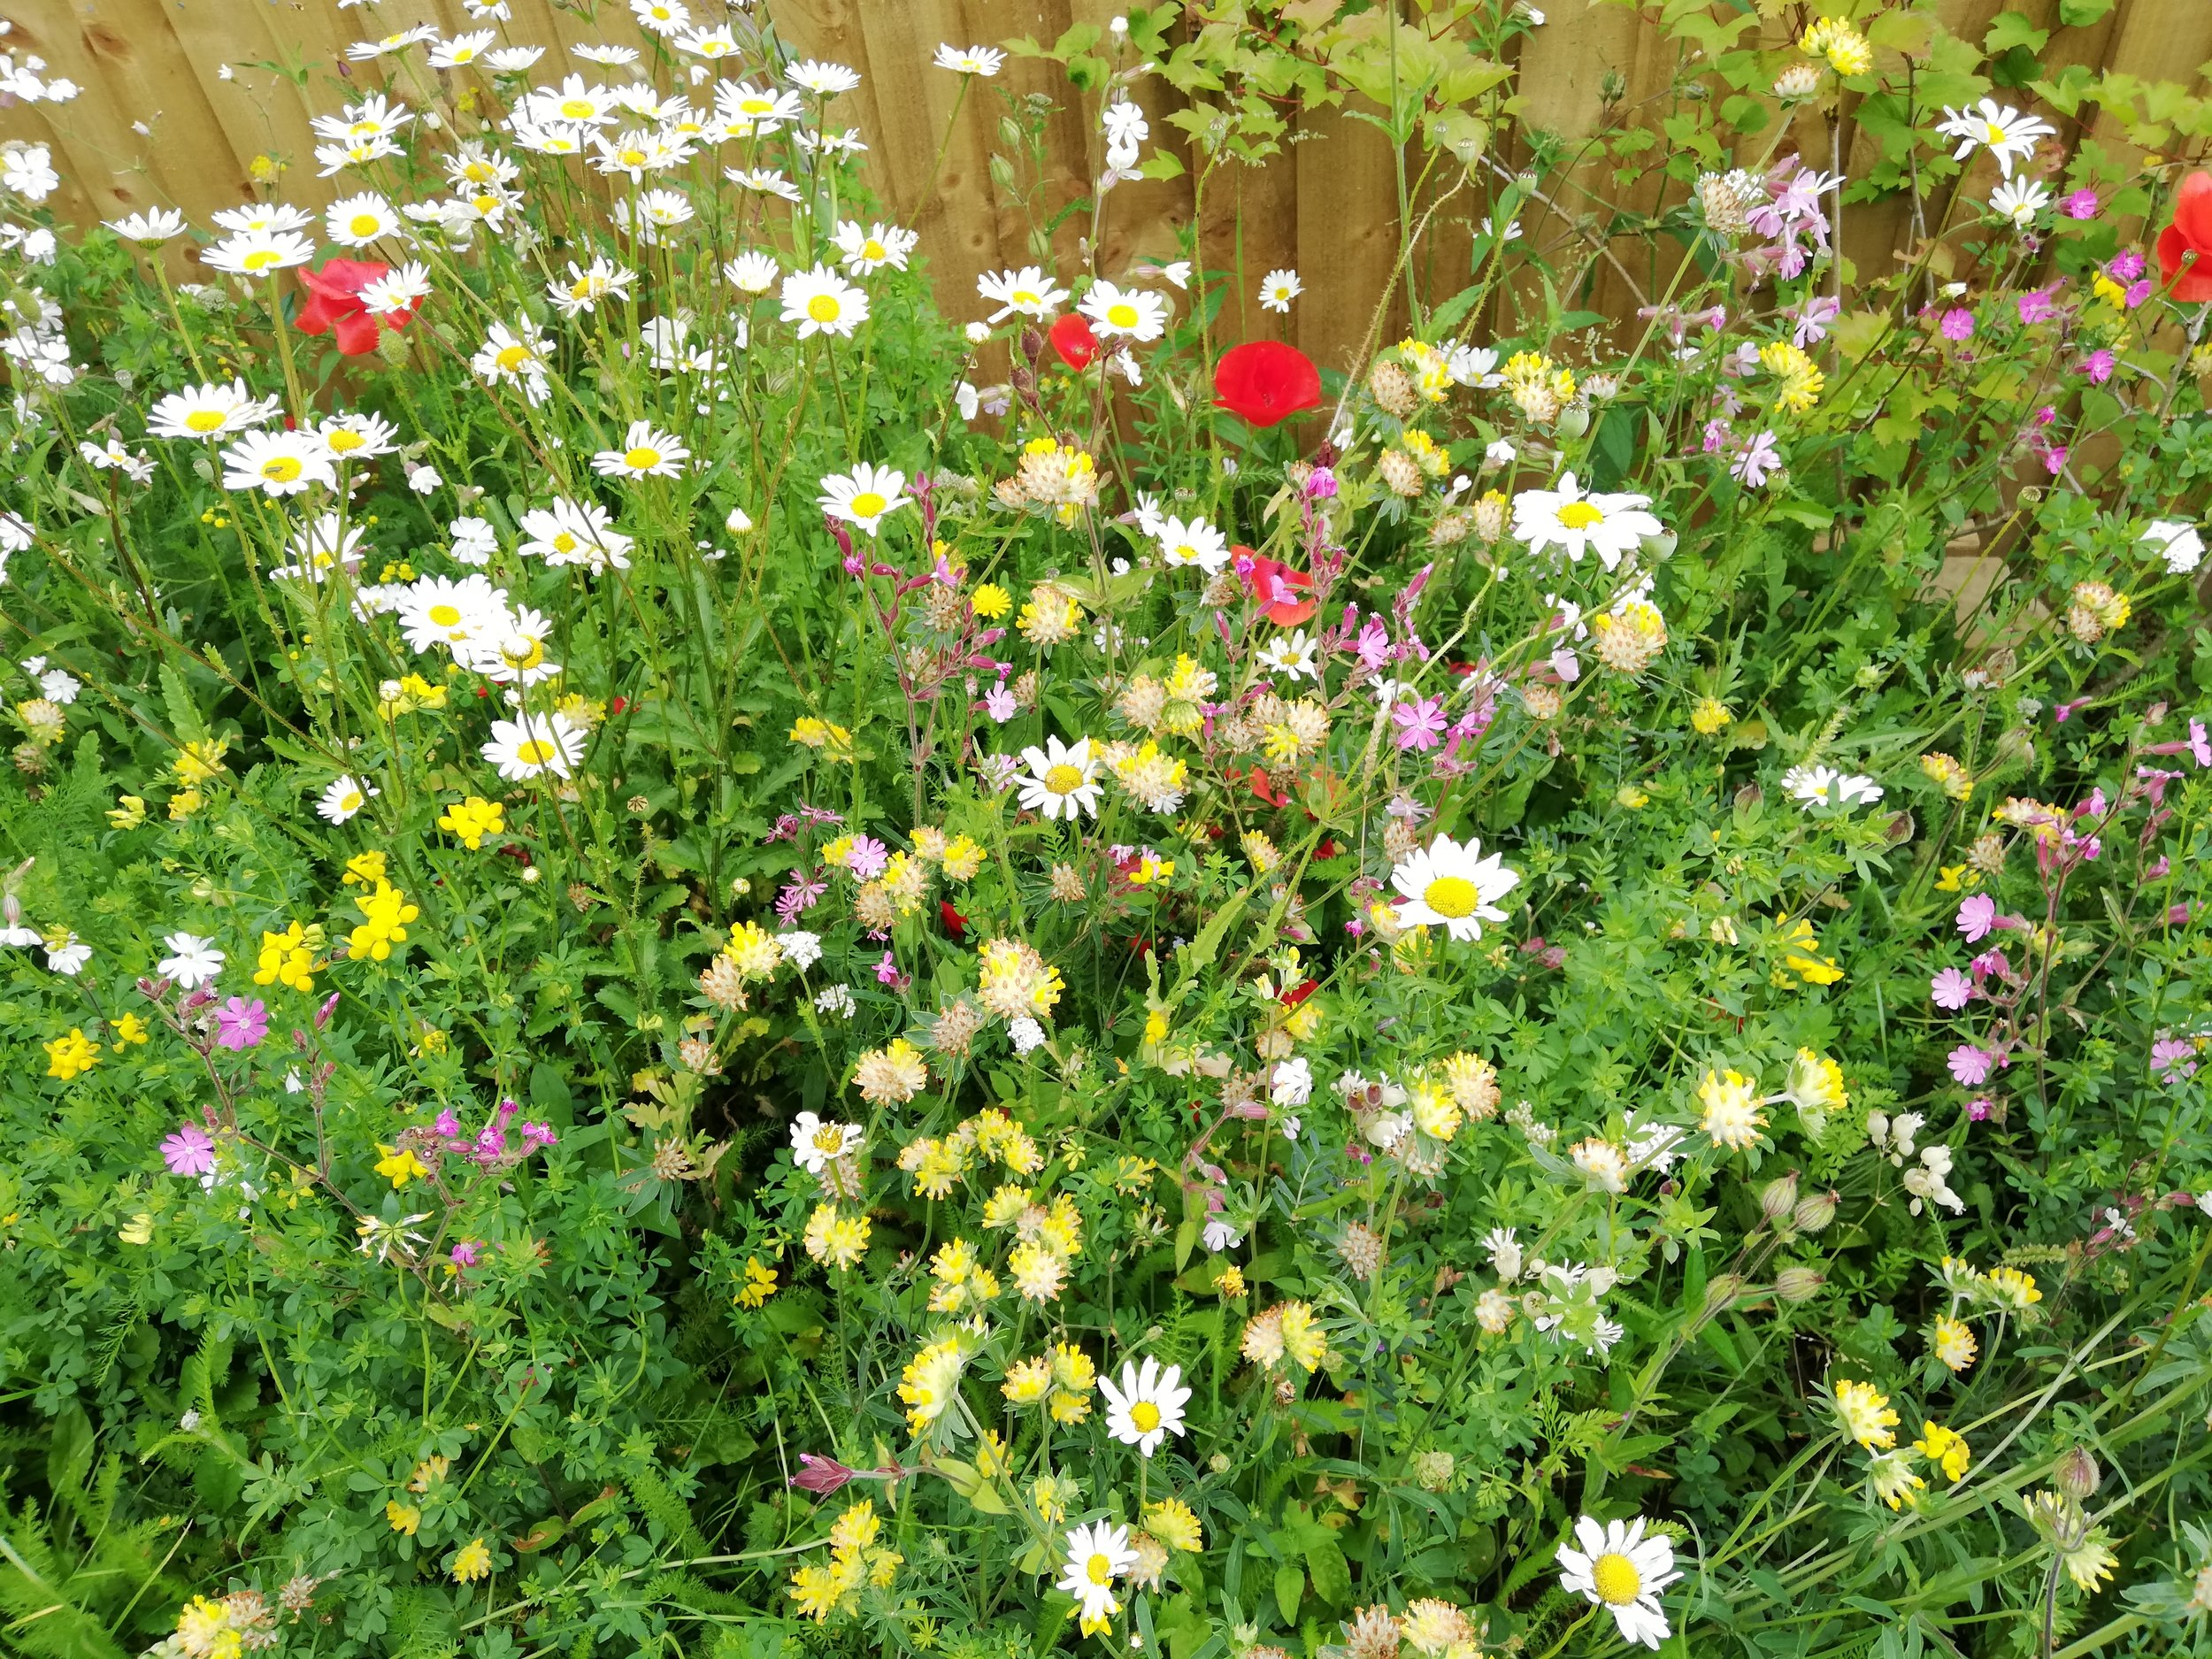 wildflowers at St Swithuns.jpg